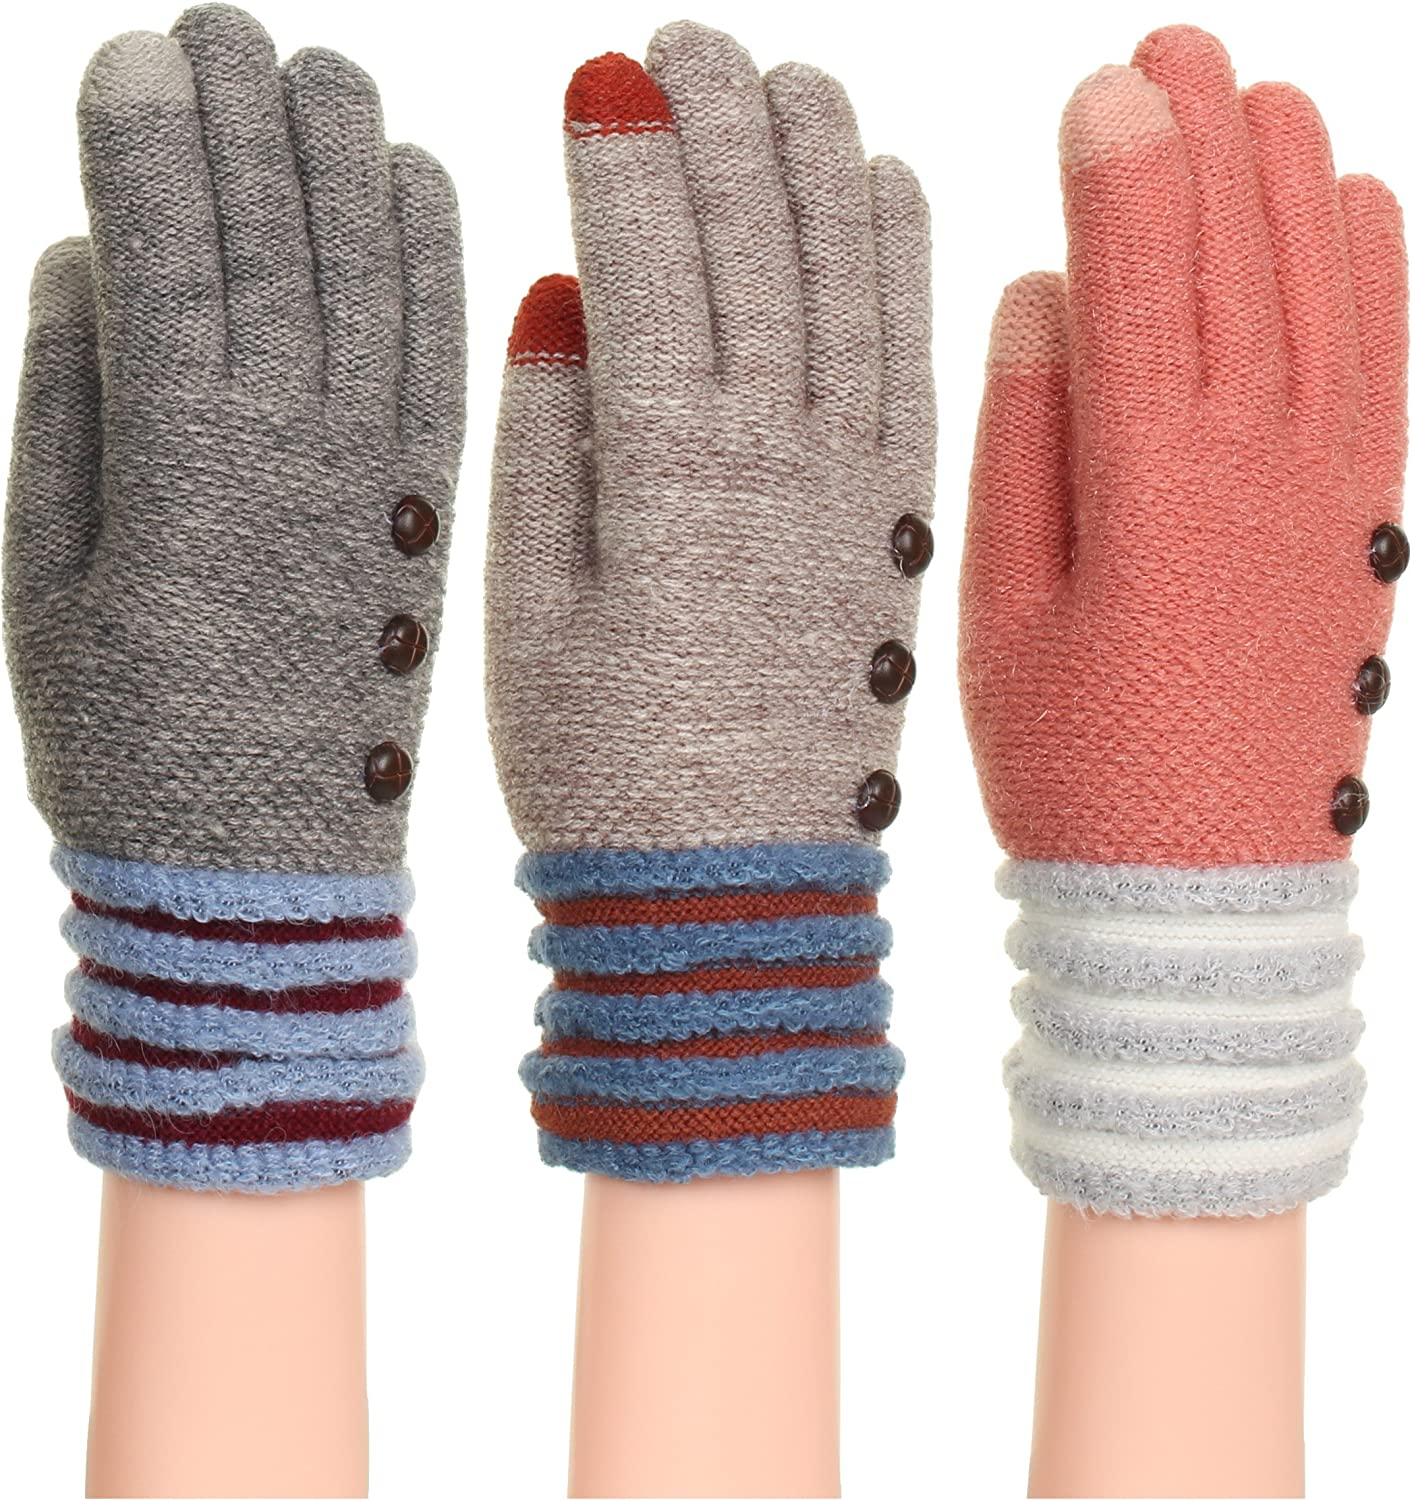 Women's Soft And Warm Fuzzy Interior Lined Gloves With Touchscreen Technology